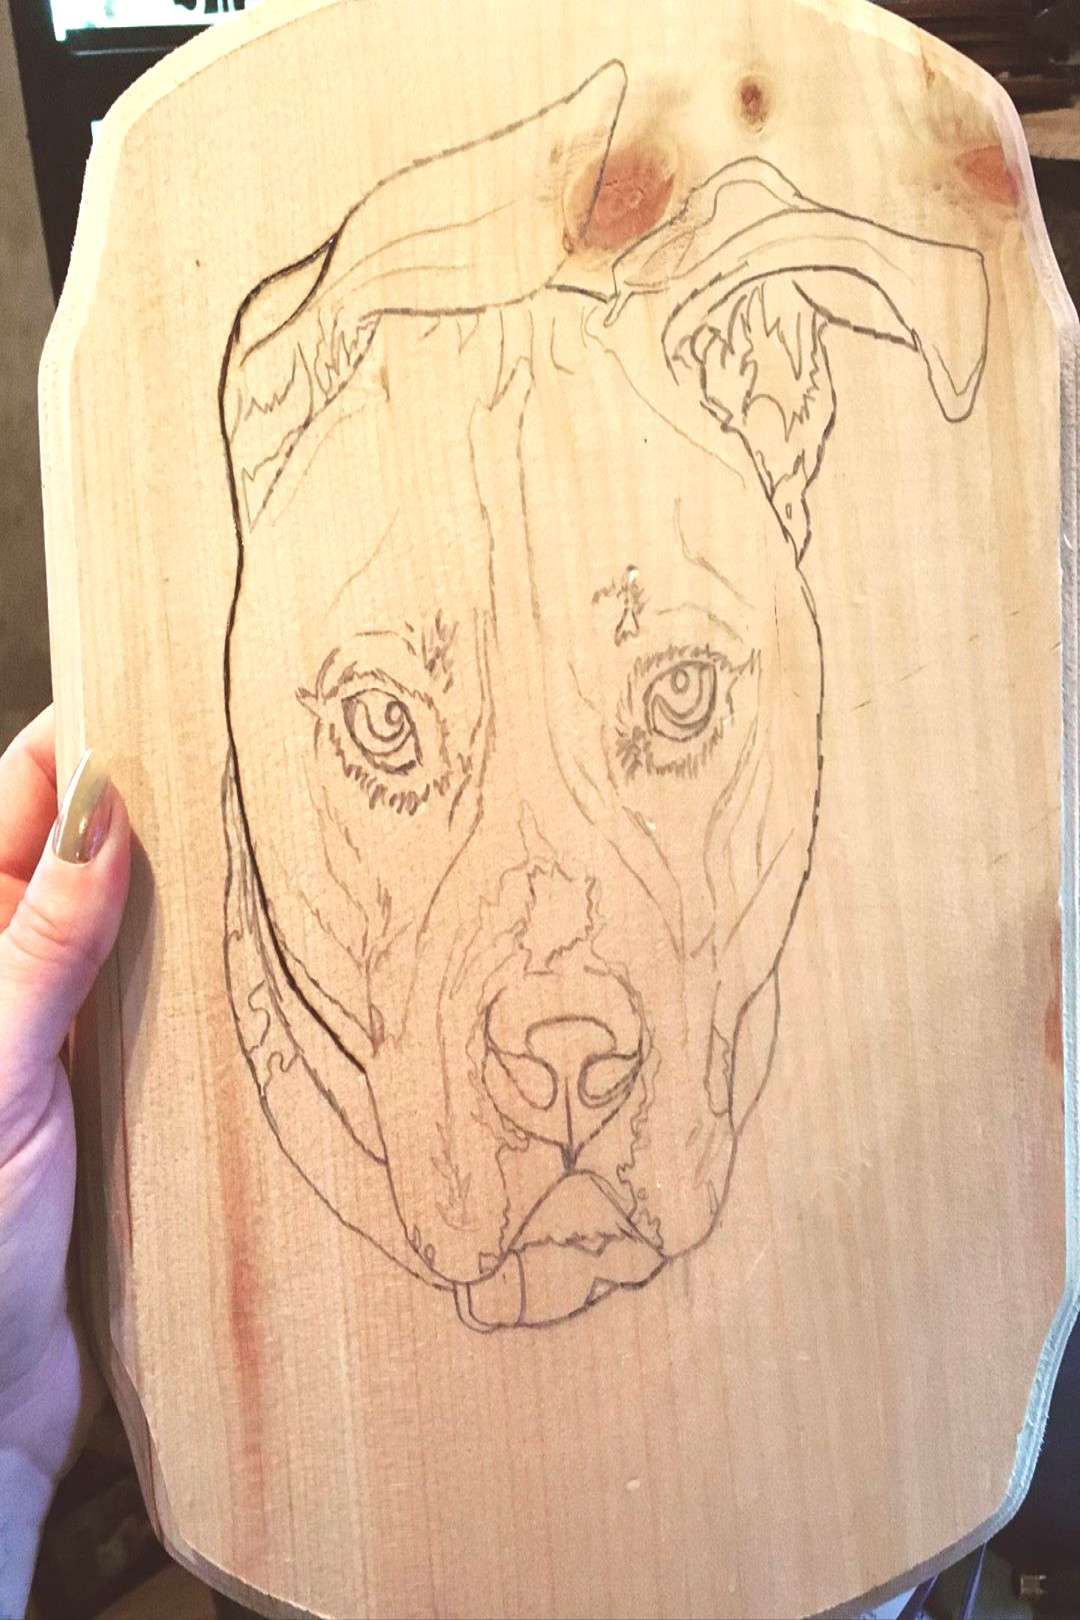 #woodburningart #woodworking #woodburning #february #222020 #photo #haley #step #dean #by #on #p STEP BY STEP . . . . #woodworking #woodburning #woodburningart #pYou can find Wood burning art and more on our webs...